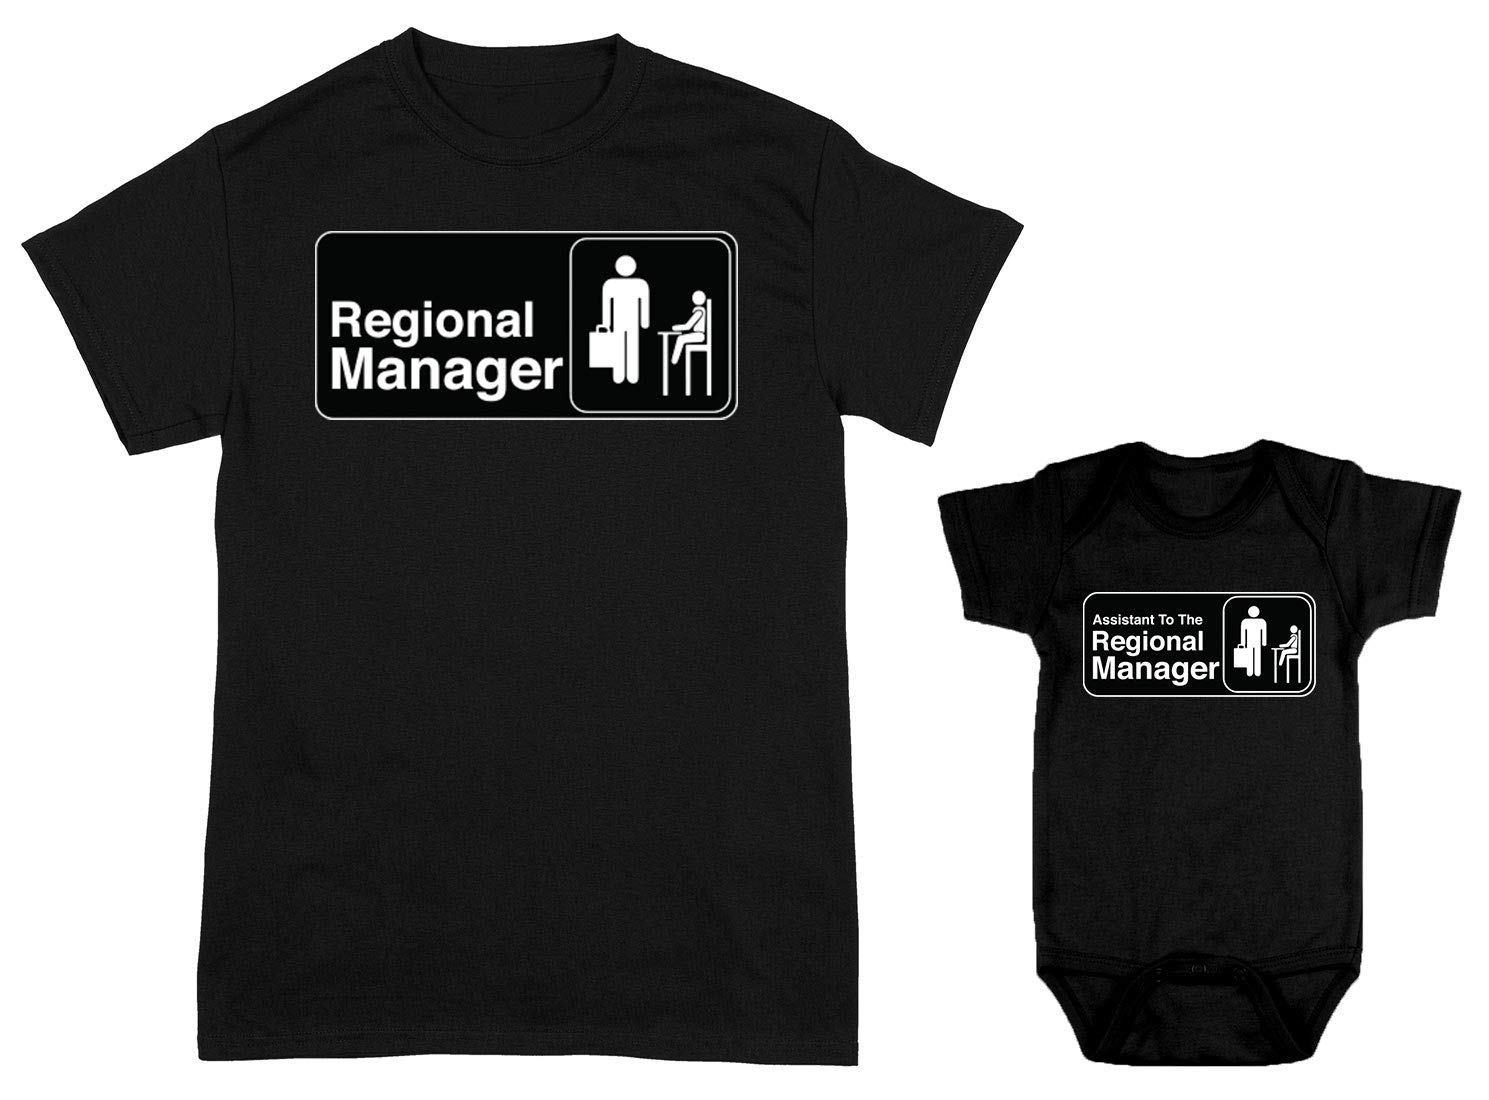 HAASE UNLIMITED Regional Manager/Assistant 2-Pack Bodysuit & Men's T-Shirt (Black/Black, Large/Newborn) by HAASE UNLIMITED